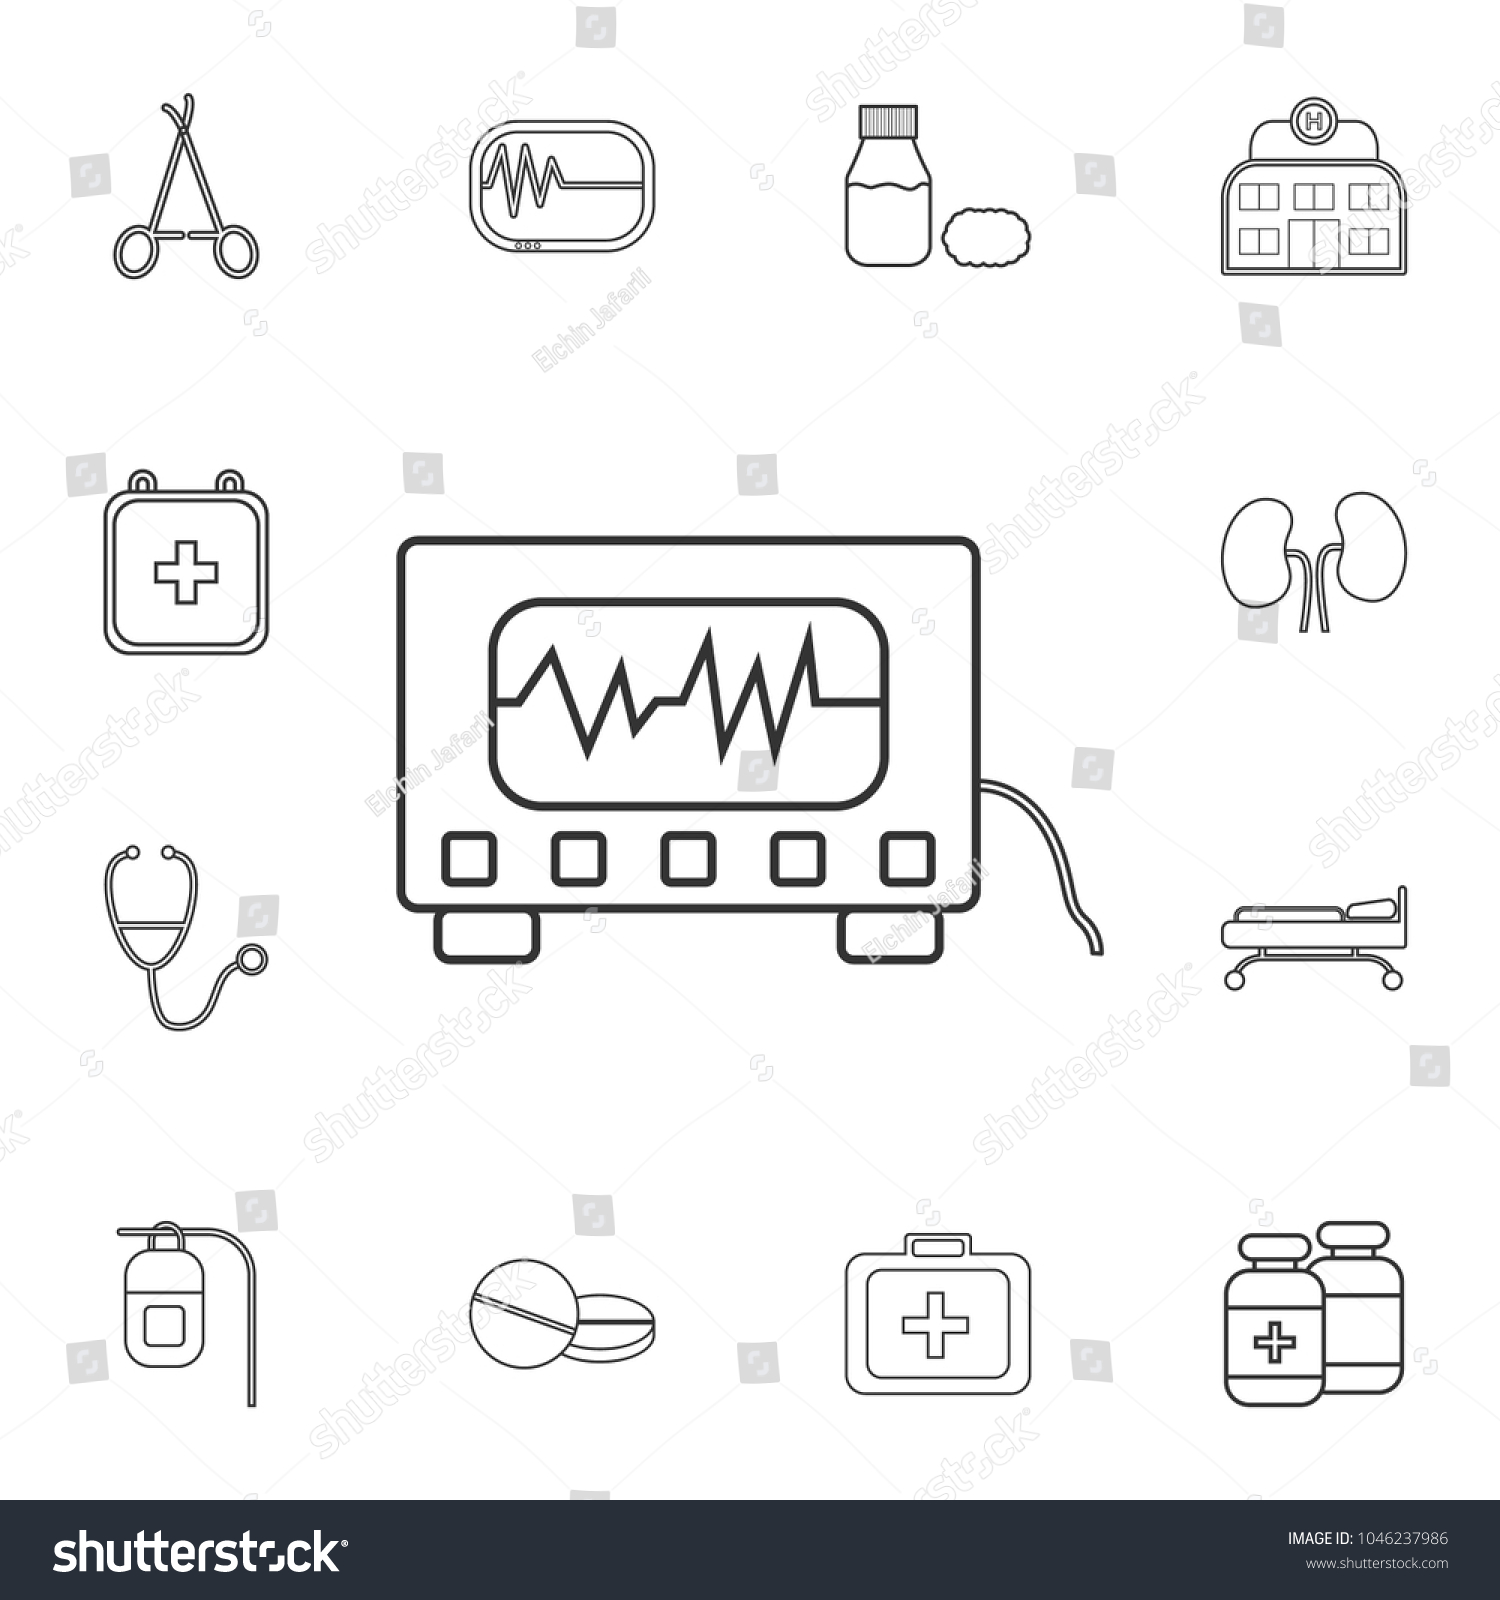 hight resolution of electrocardiogram device and heart pulse on screen icon detailed set of medicine outline icons